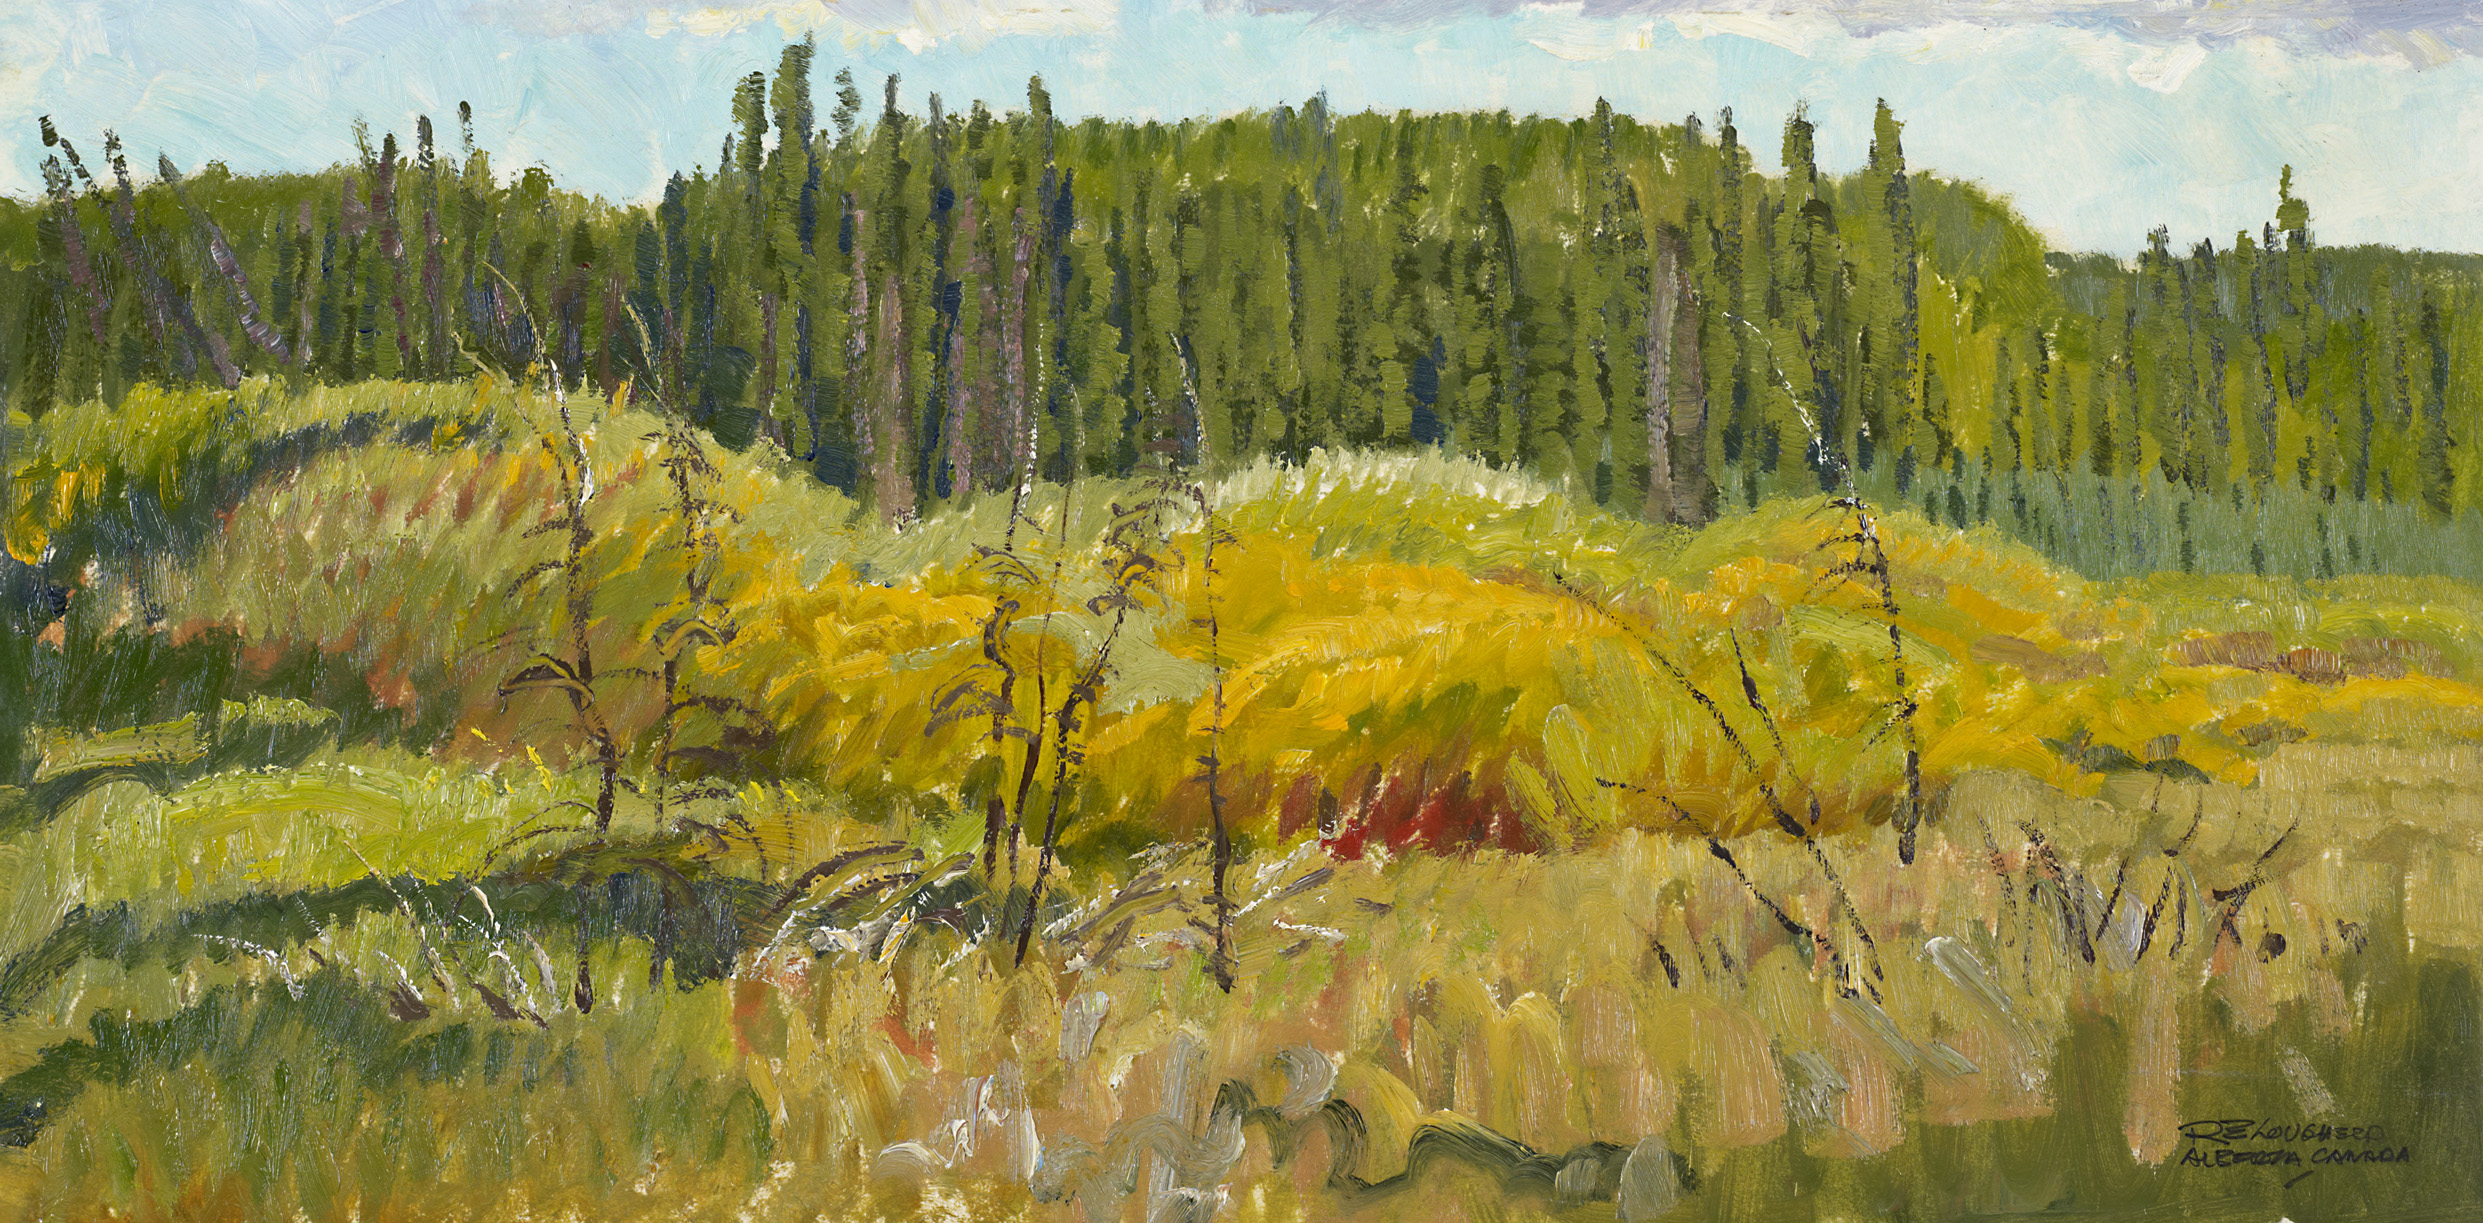 At the Edge of the Wo... by  Robert Lougheed - Masterpiece Online